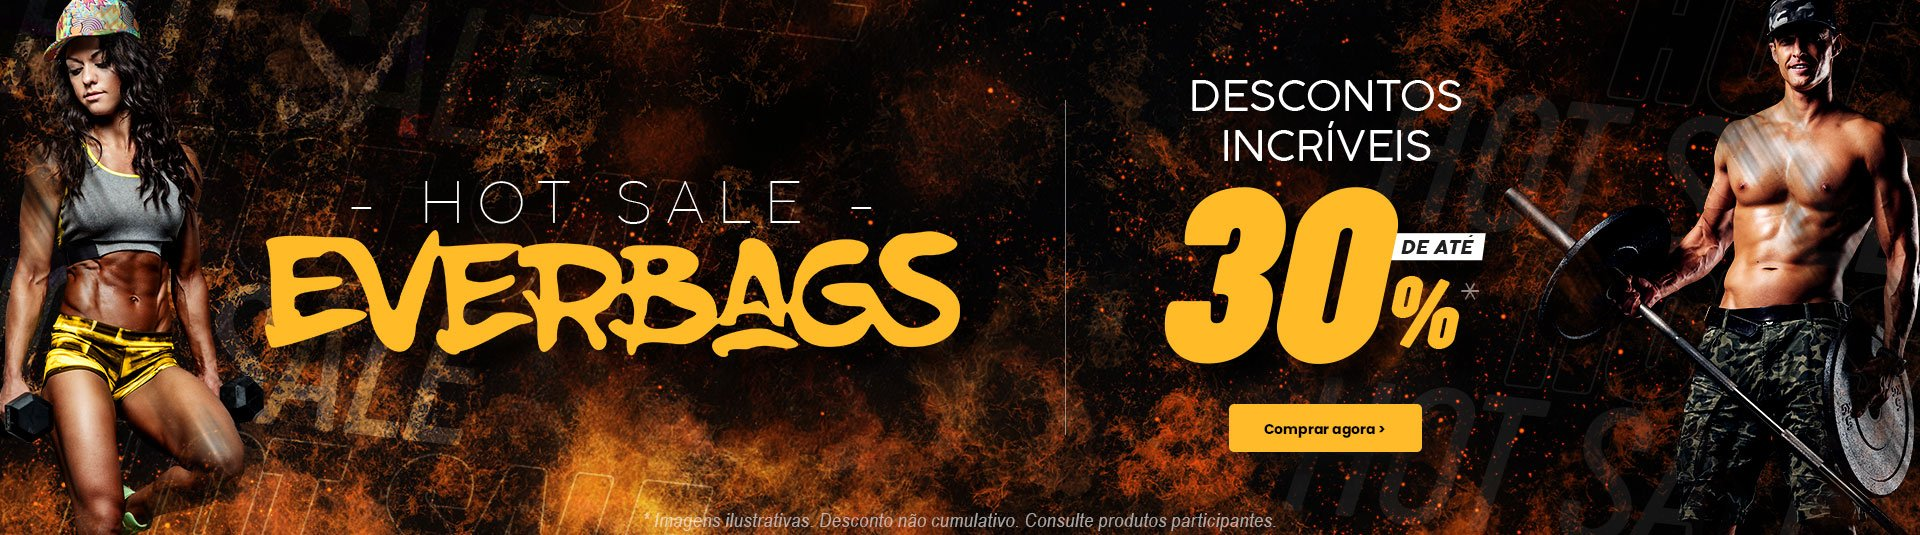 Hot Sale Everbags 2020